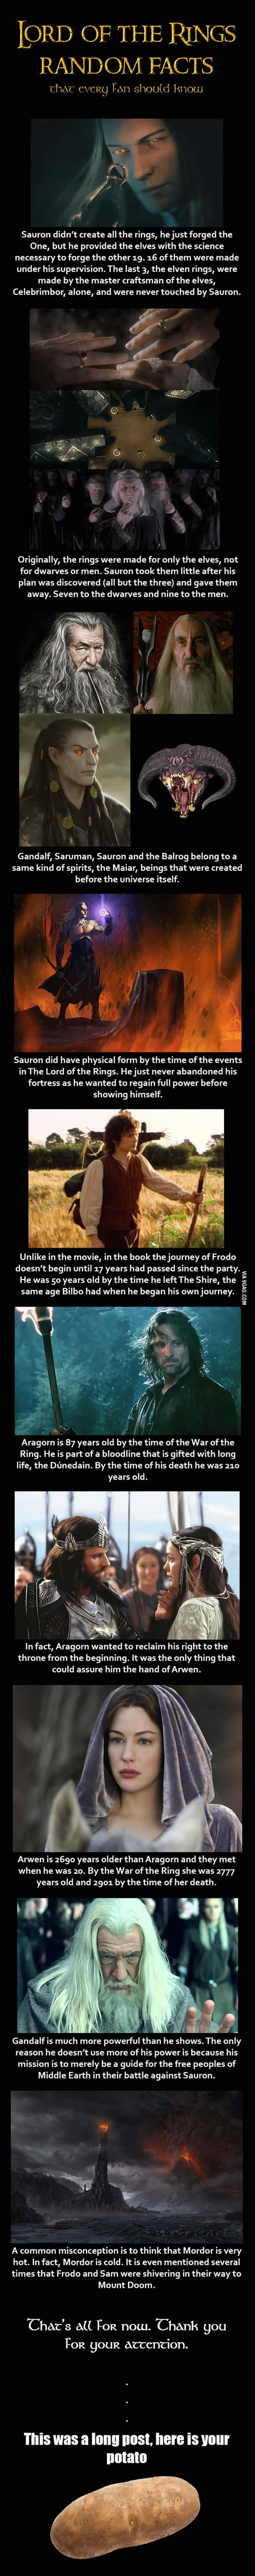 Little known facts about the characters of the Lord of the Rings trilogy